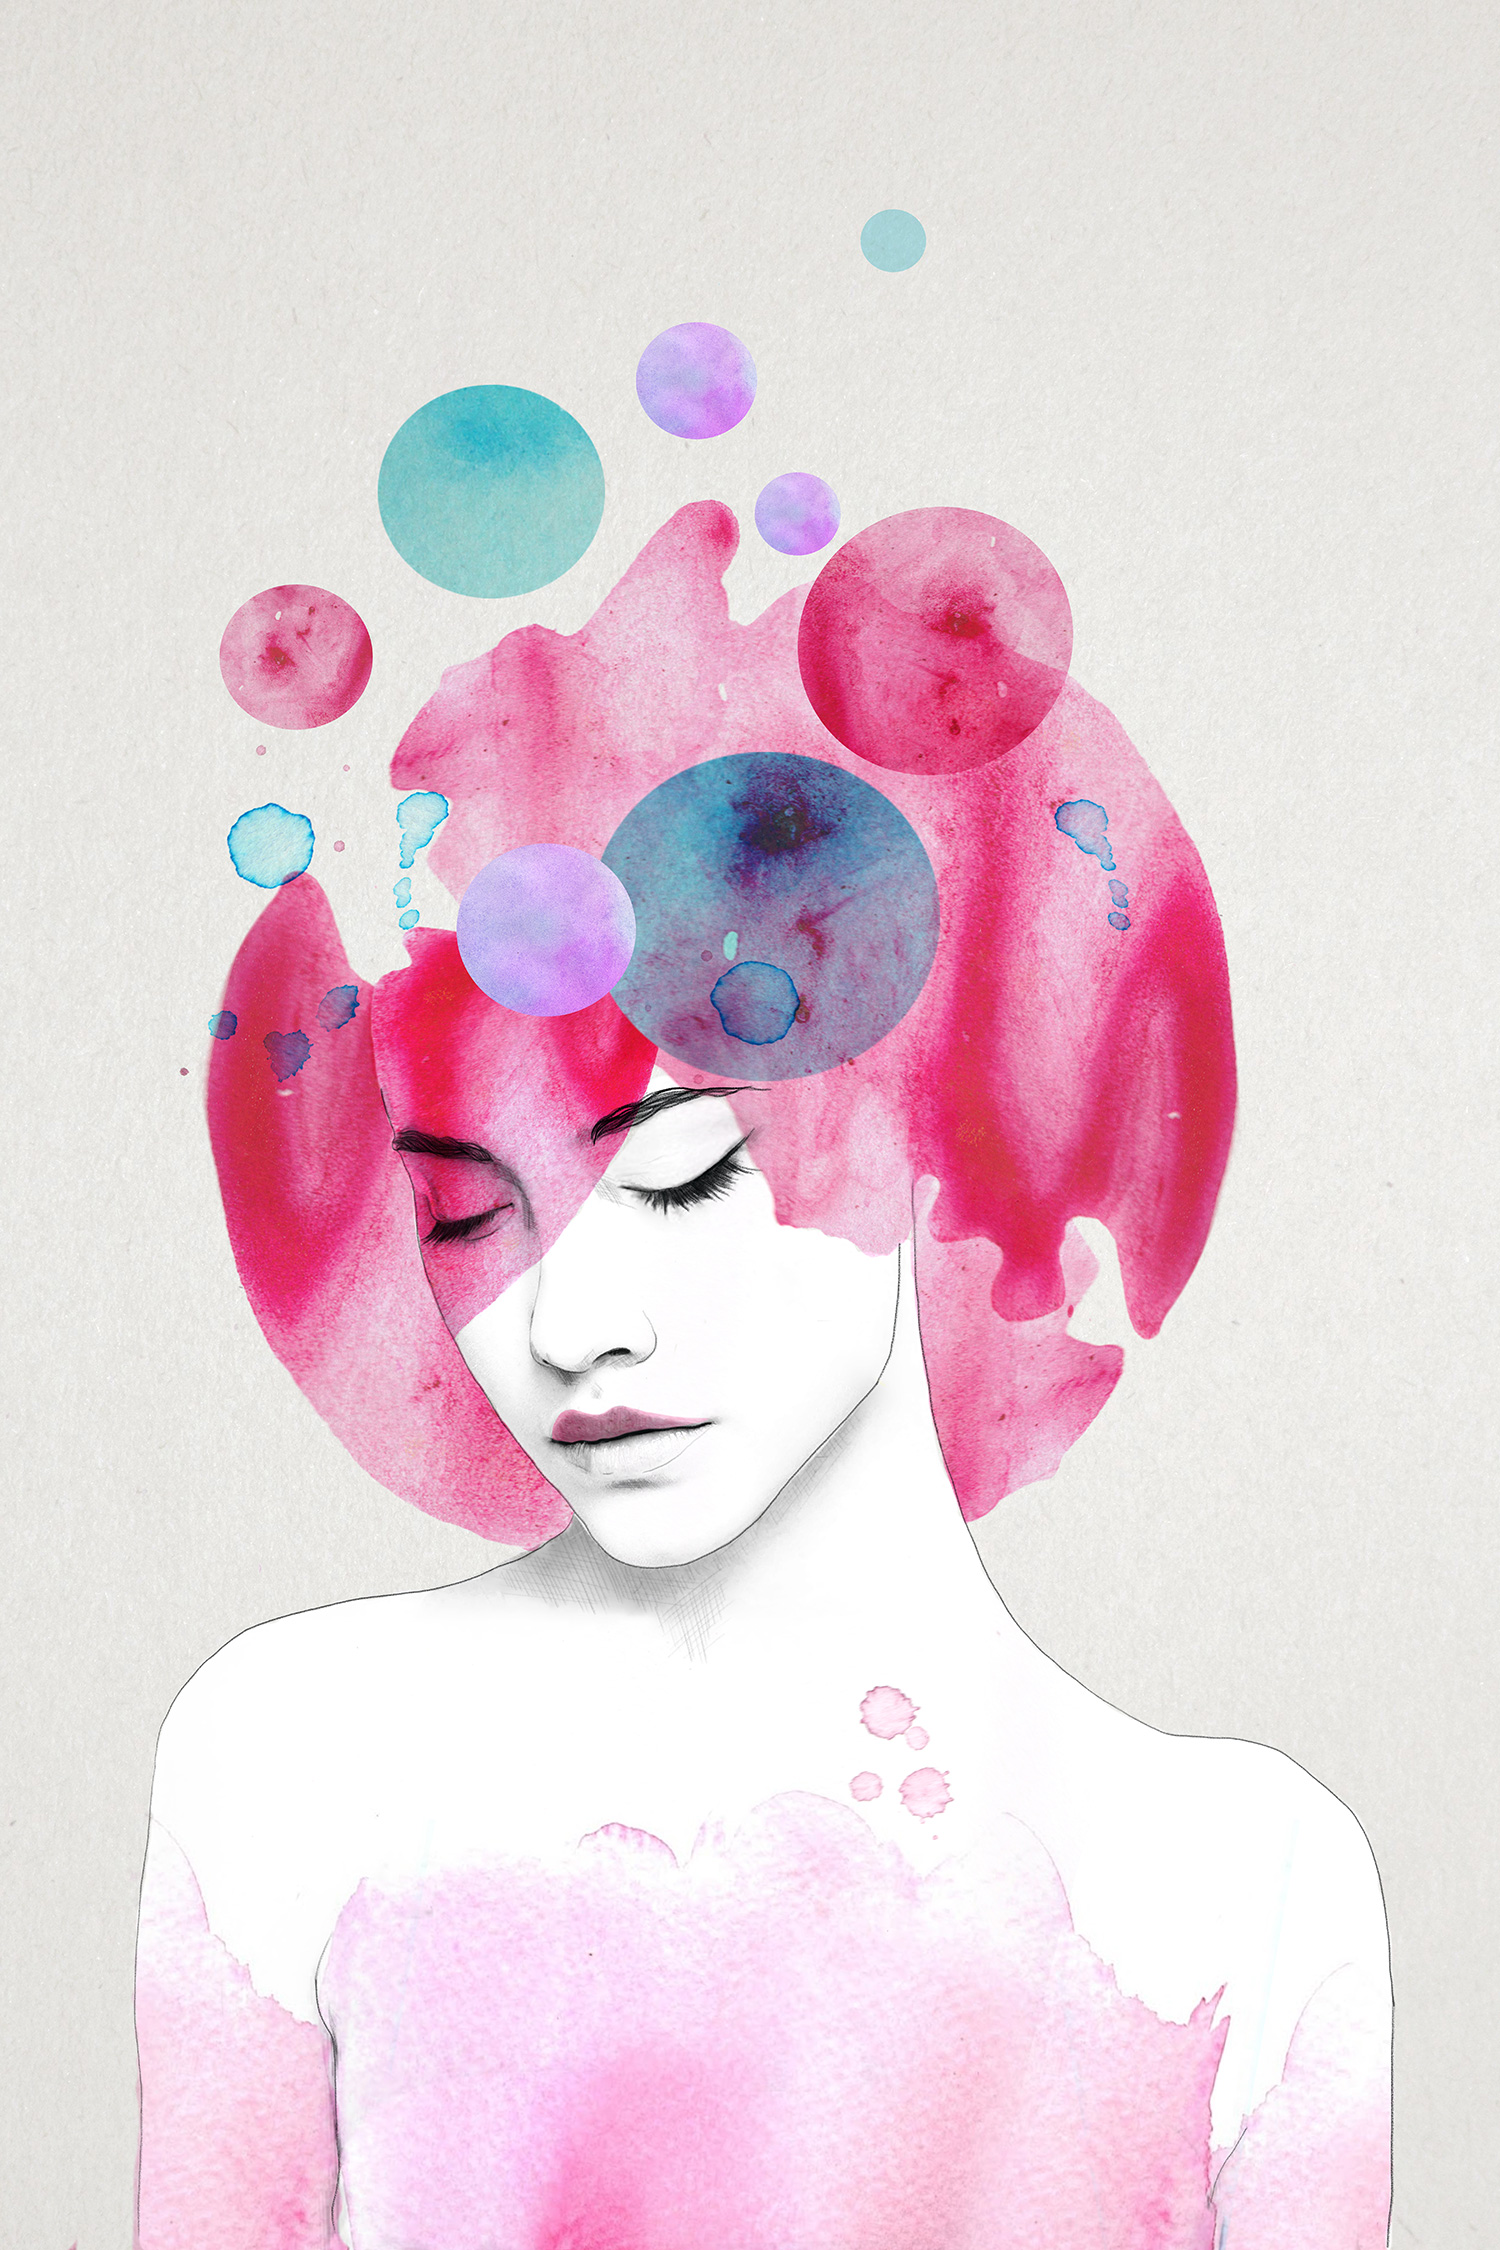 Miss Amelie is also a print work by Canadian illustrator Jenny Liz Rome